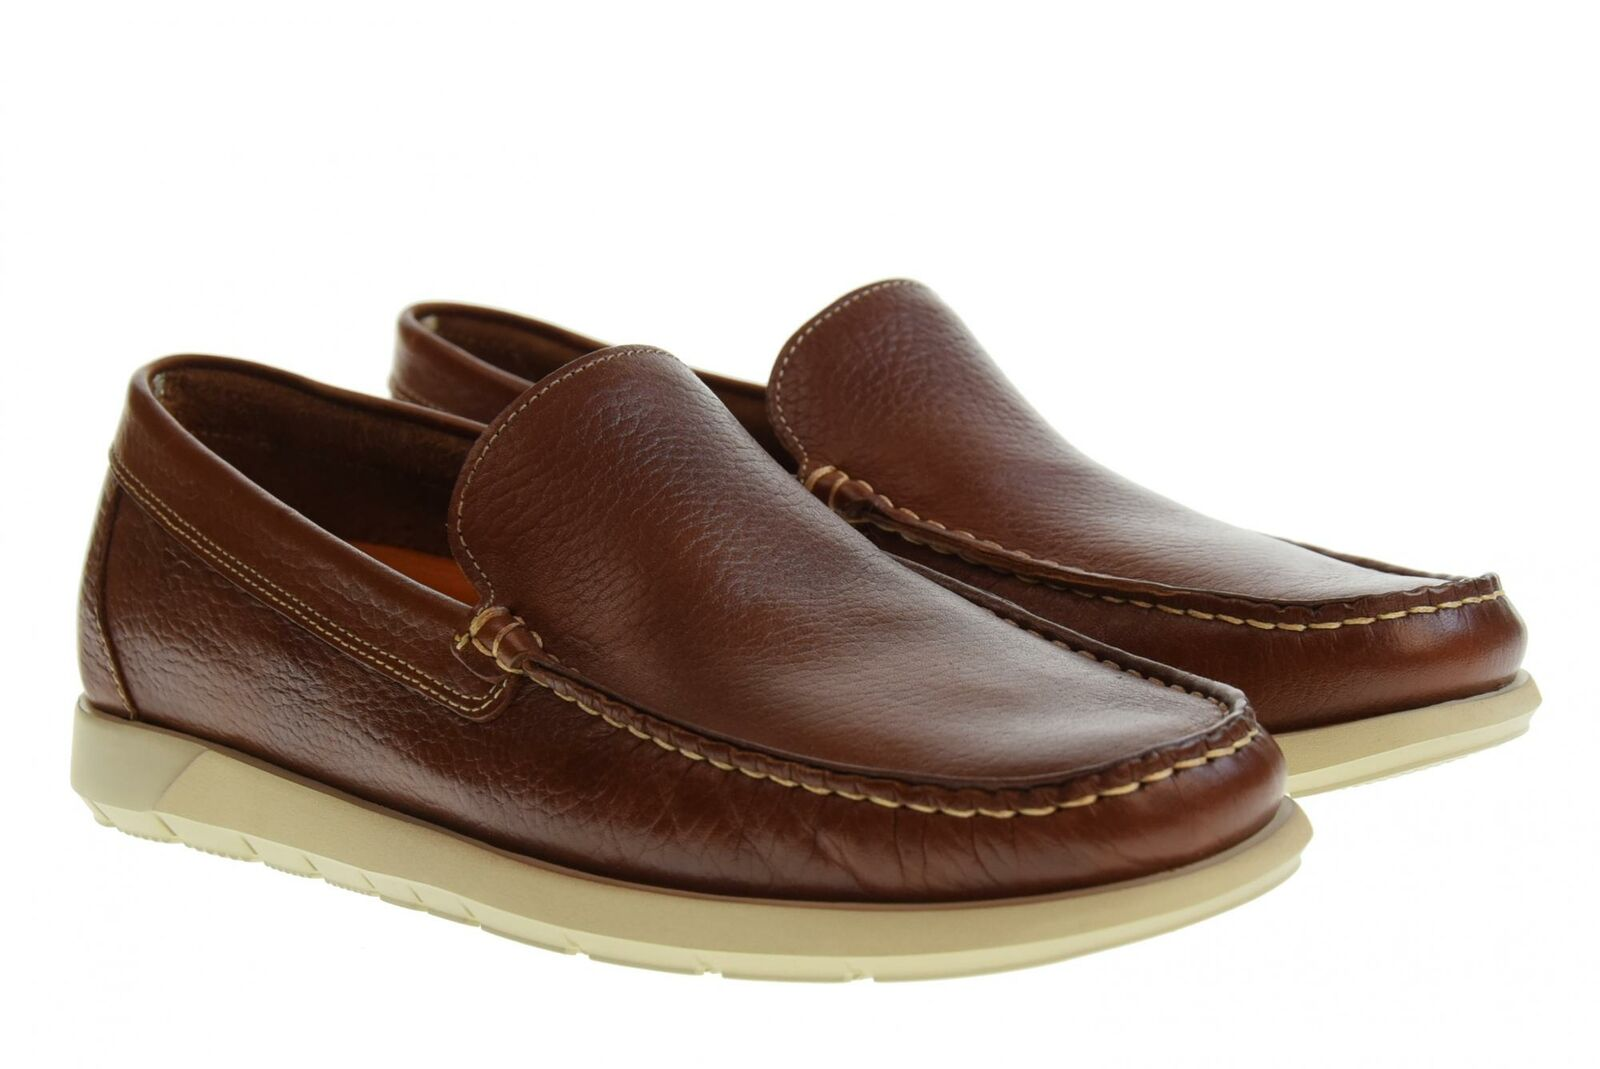 Vallegreen P19u men's shoes moccasins 11865 CUOIO